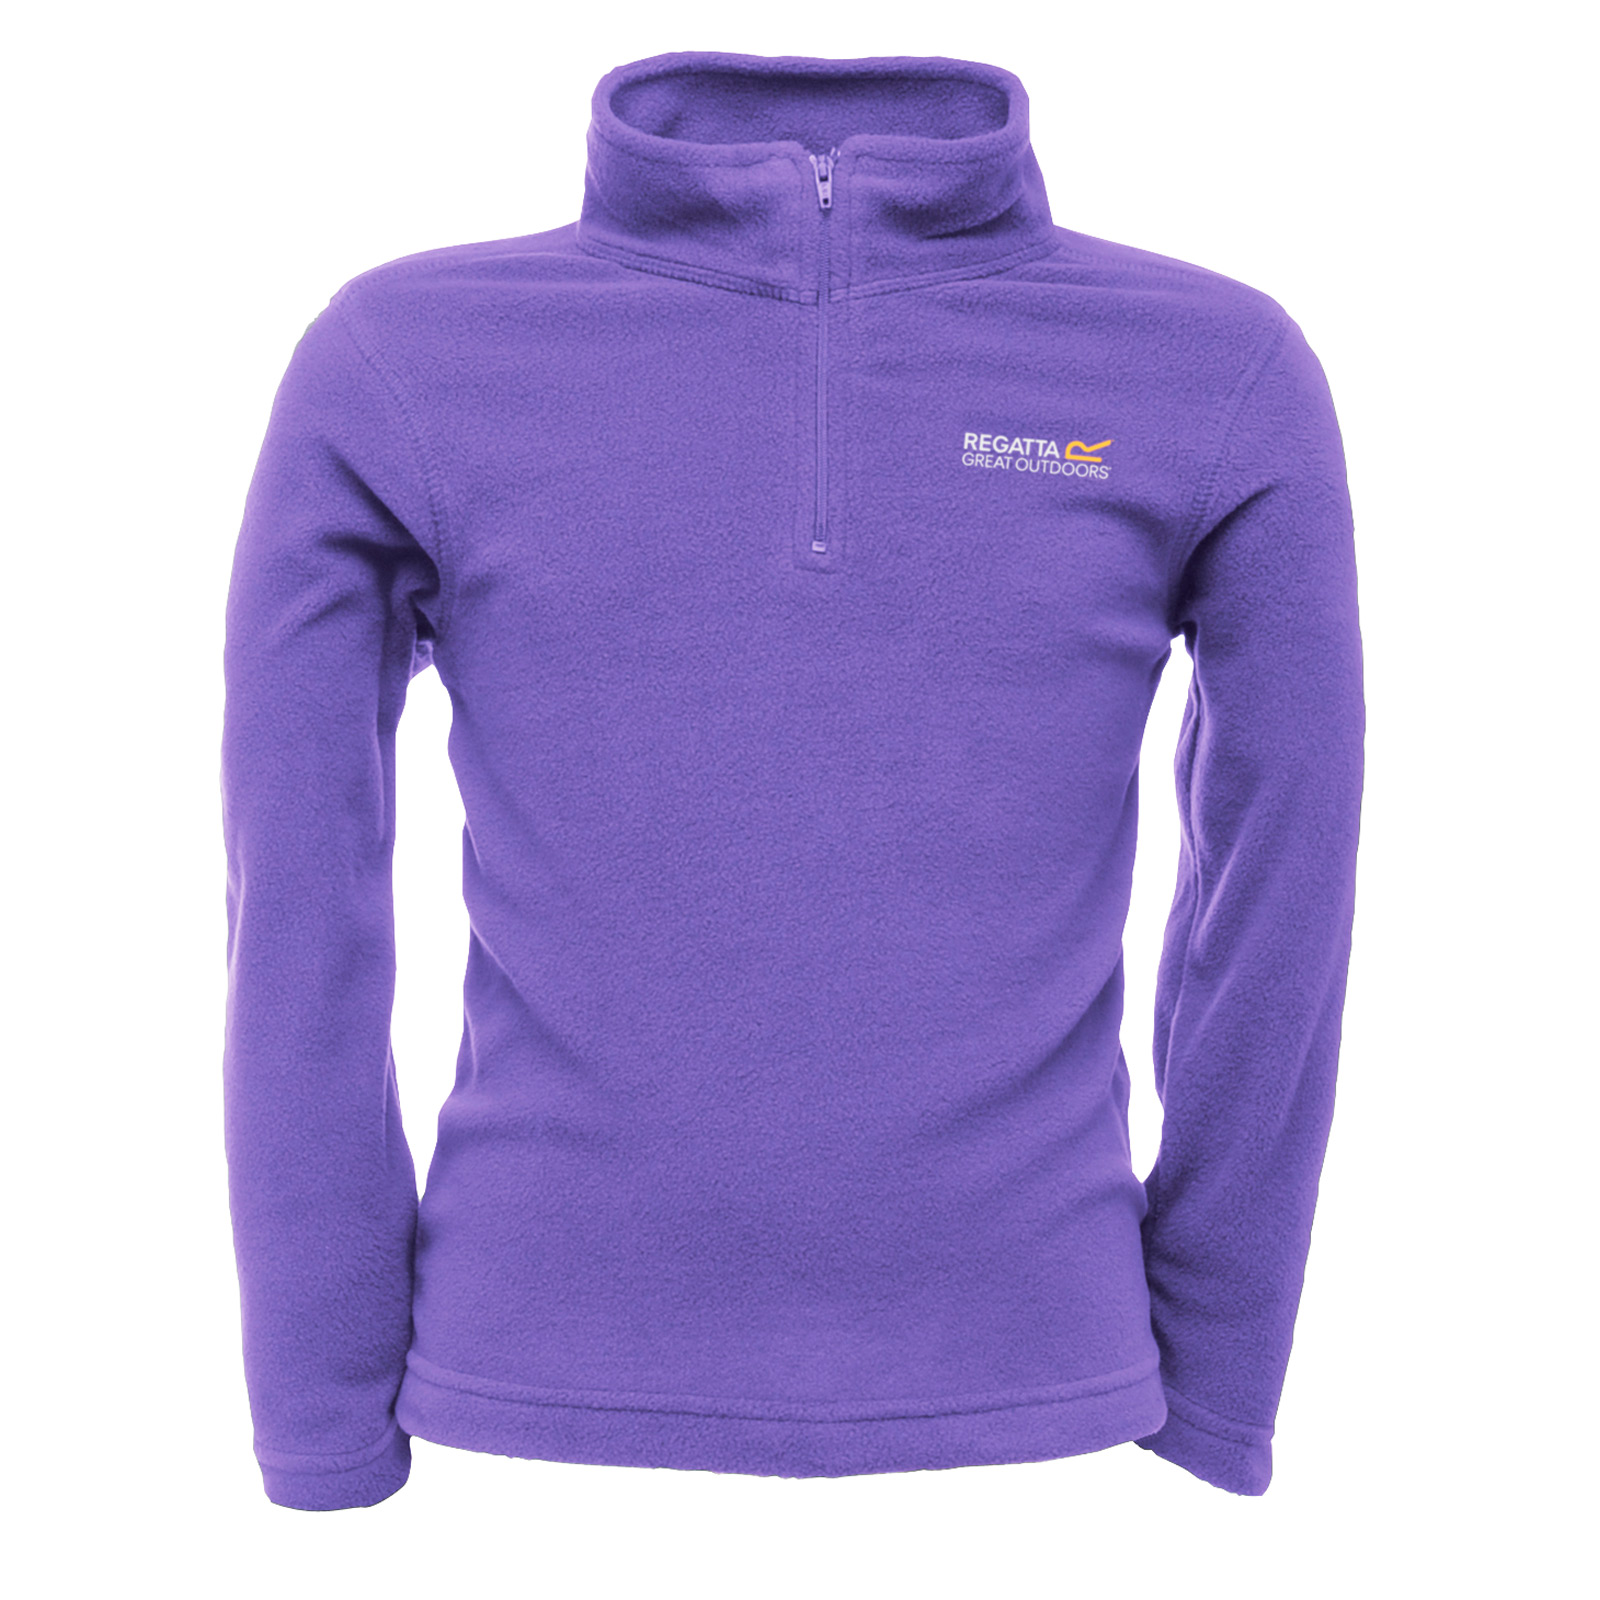 Regatta-Childrens-Hot-Shot-Fleece-Jacket-Zip-Neck-Top-Outdoor-Wear-Kids-Colours